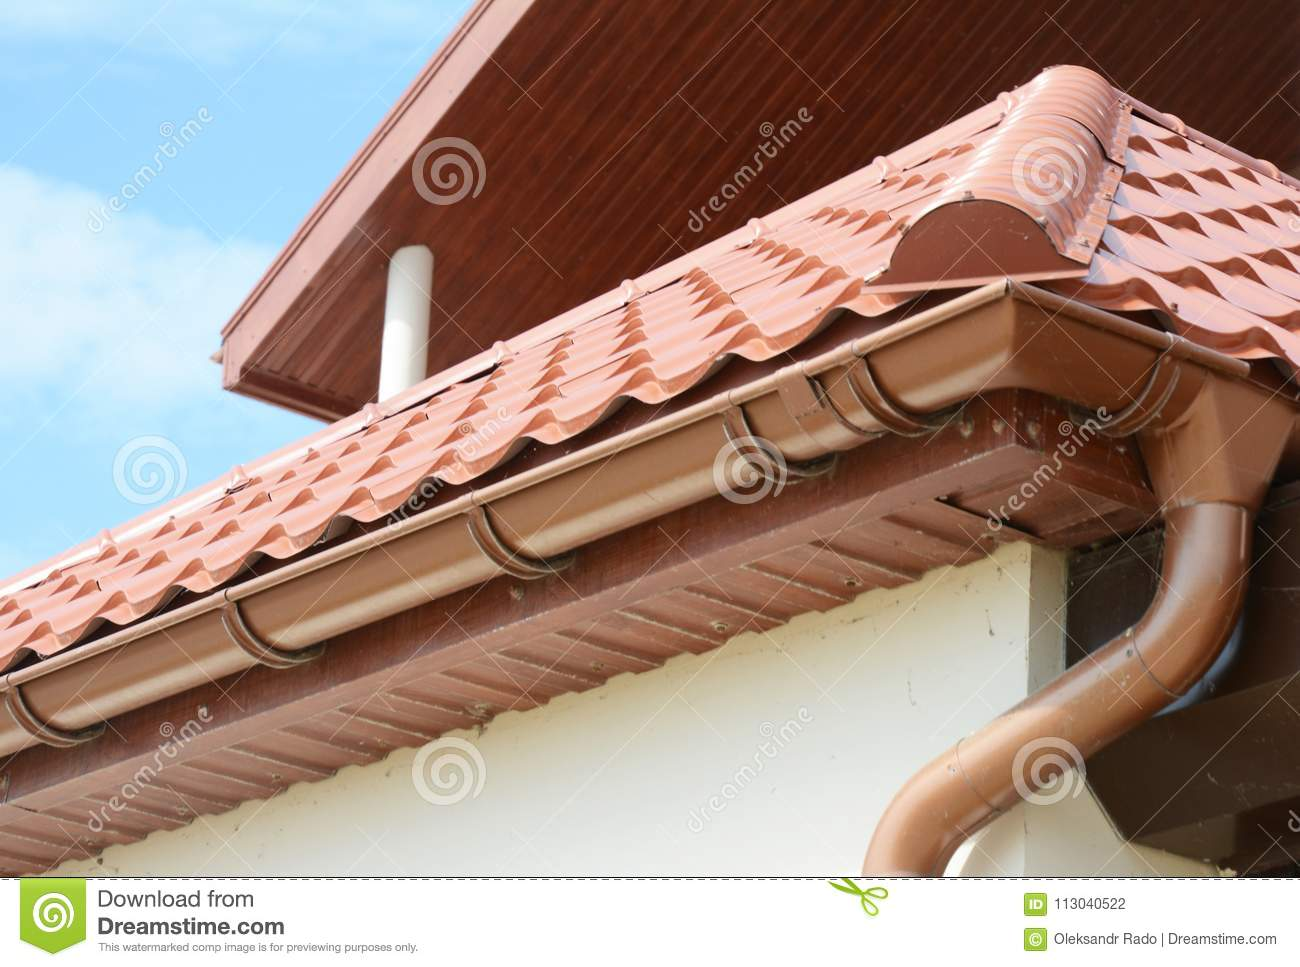 https www dreamstime com close up roof gutter holder guttering downspout pipe clay tiles roof installing roof gutter close up roof gutter image113040522